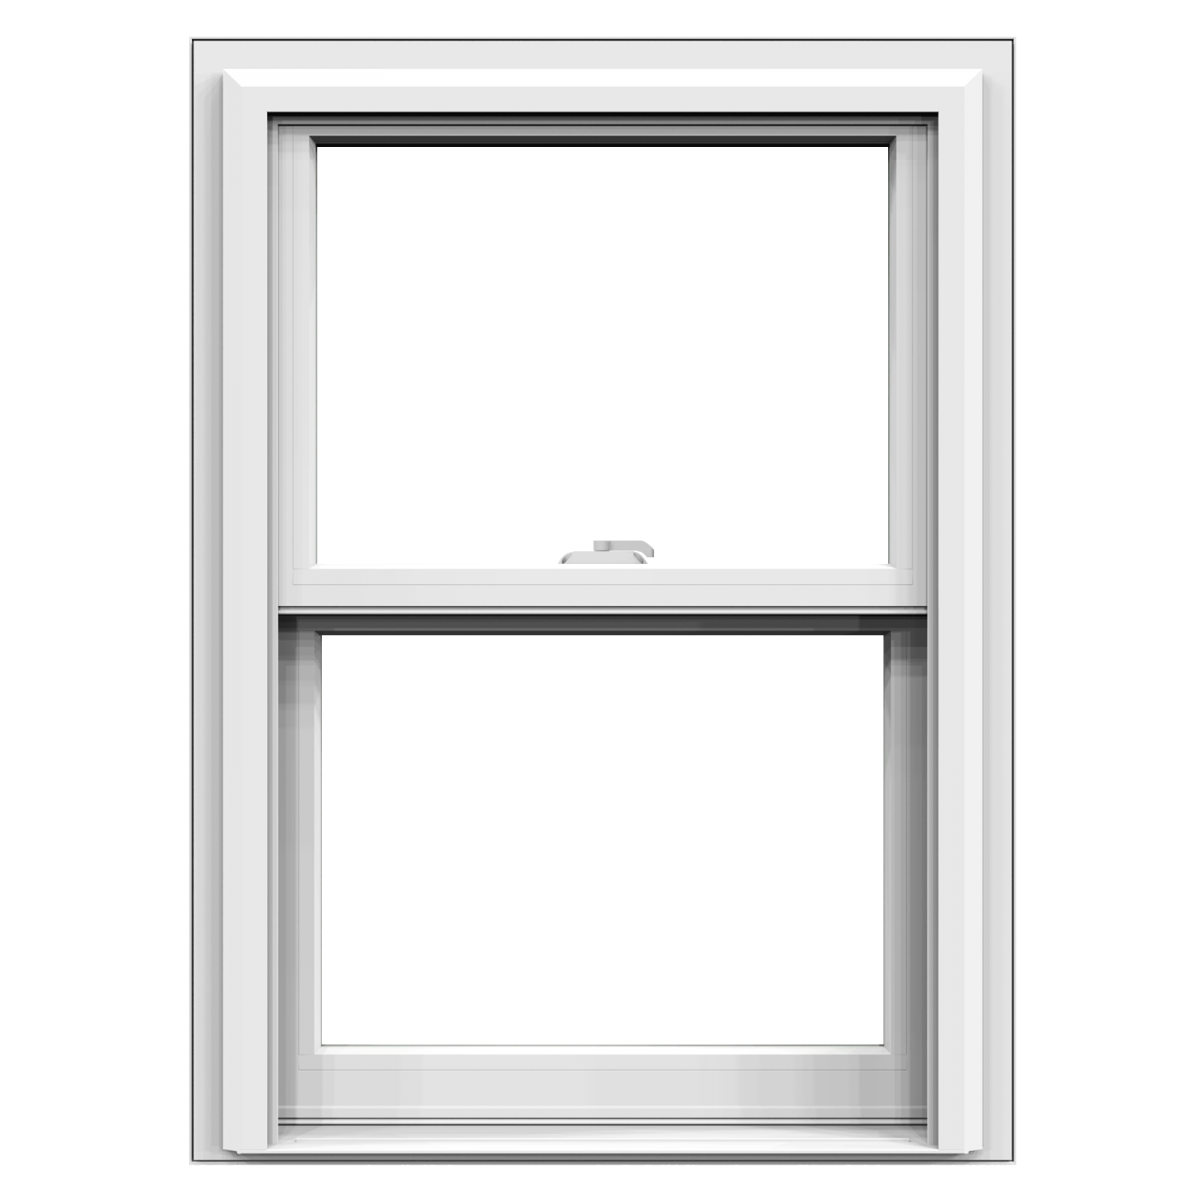 Crusader Windows Northeast Building Products